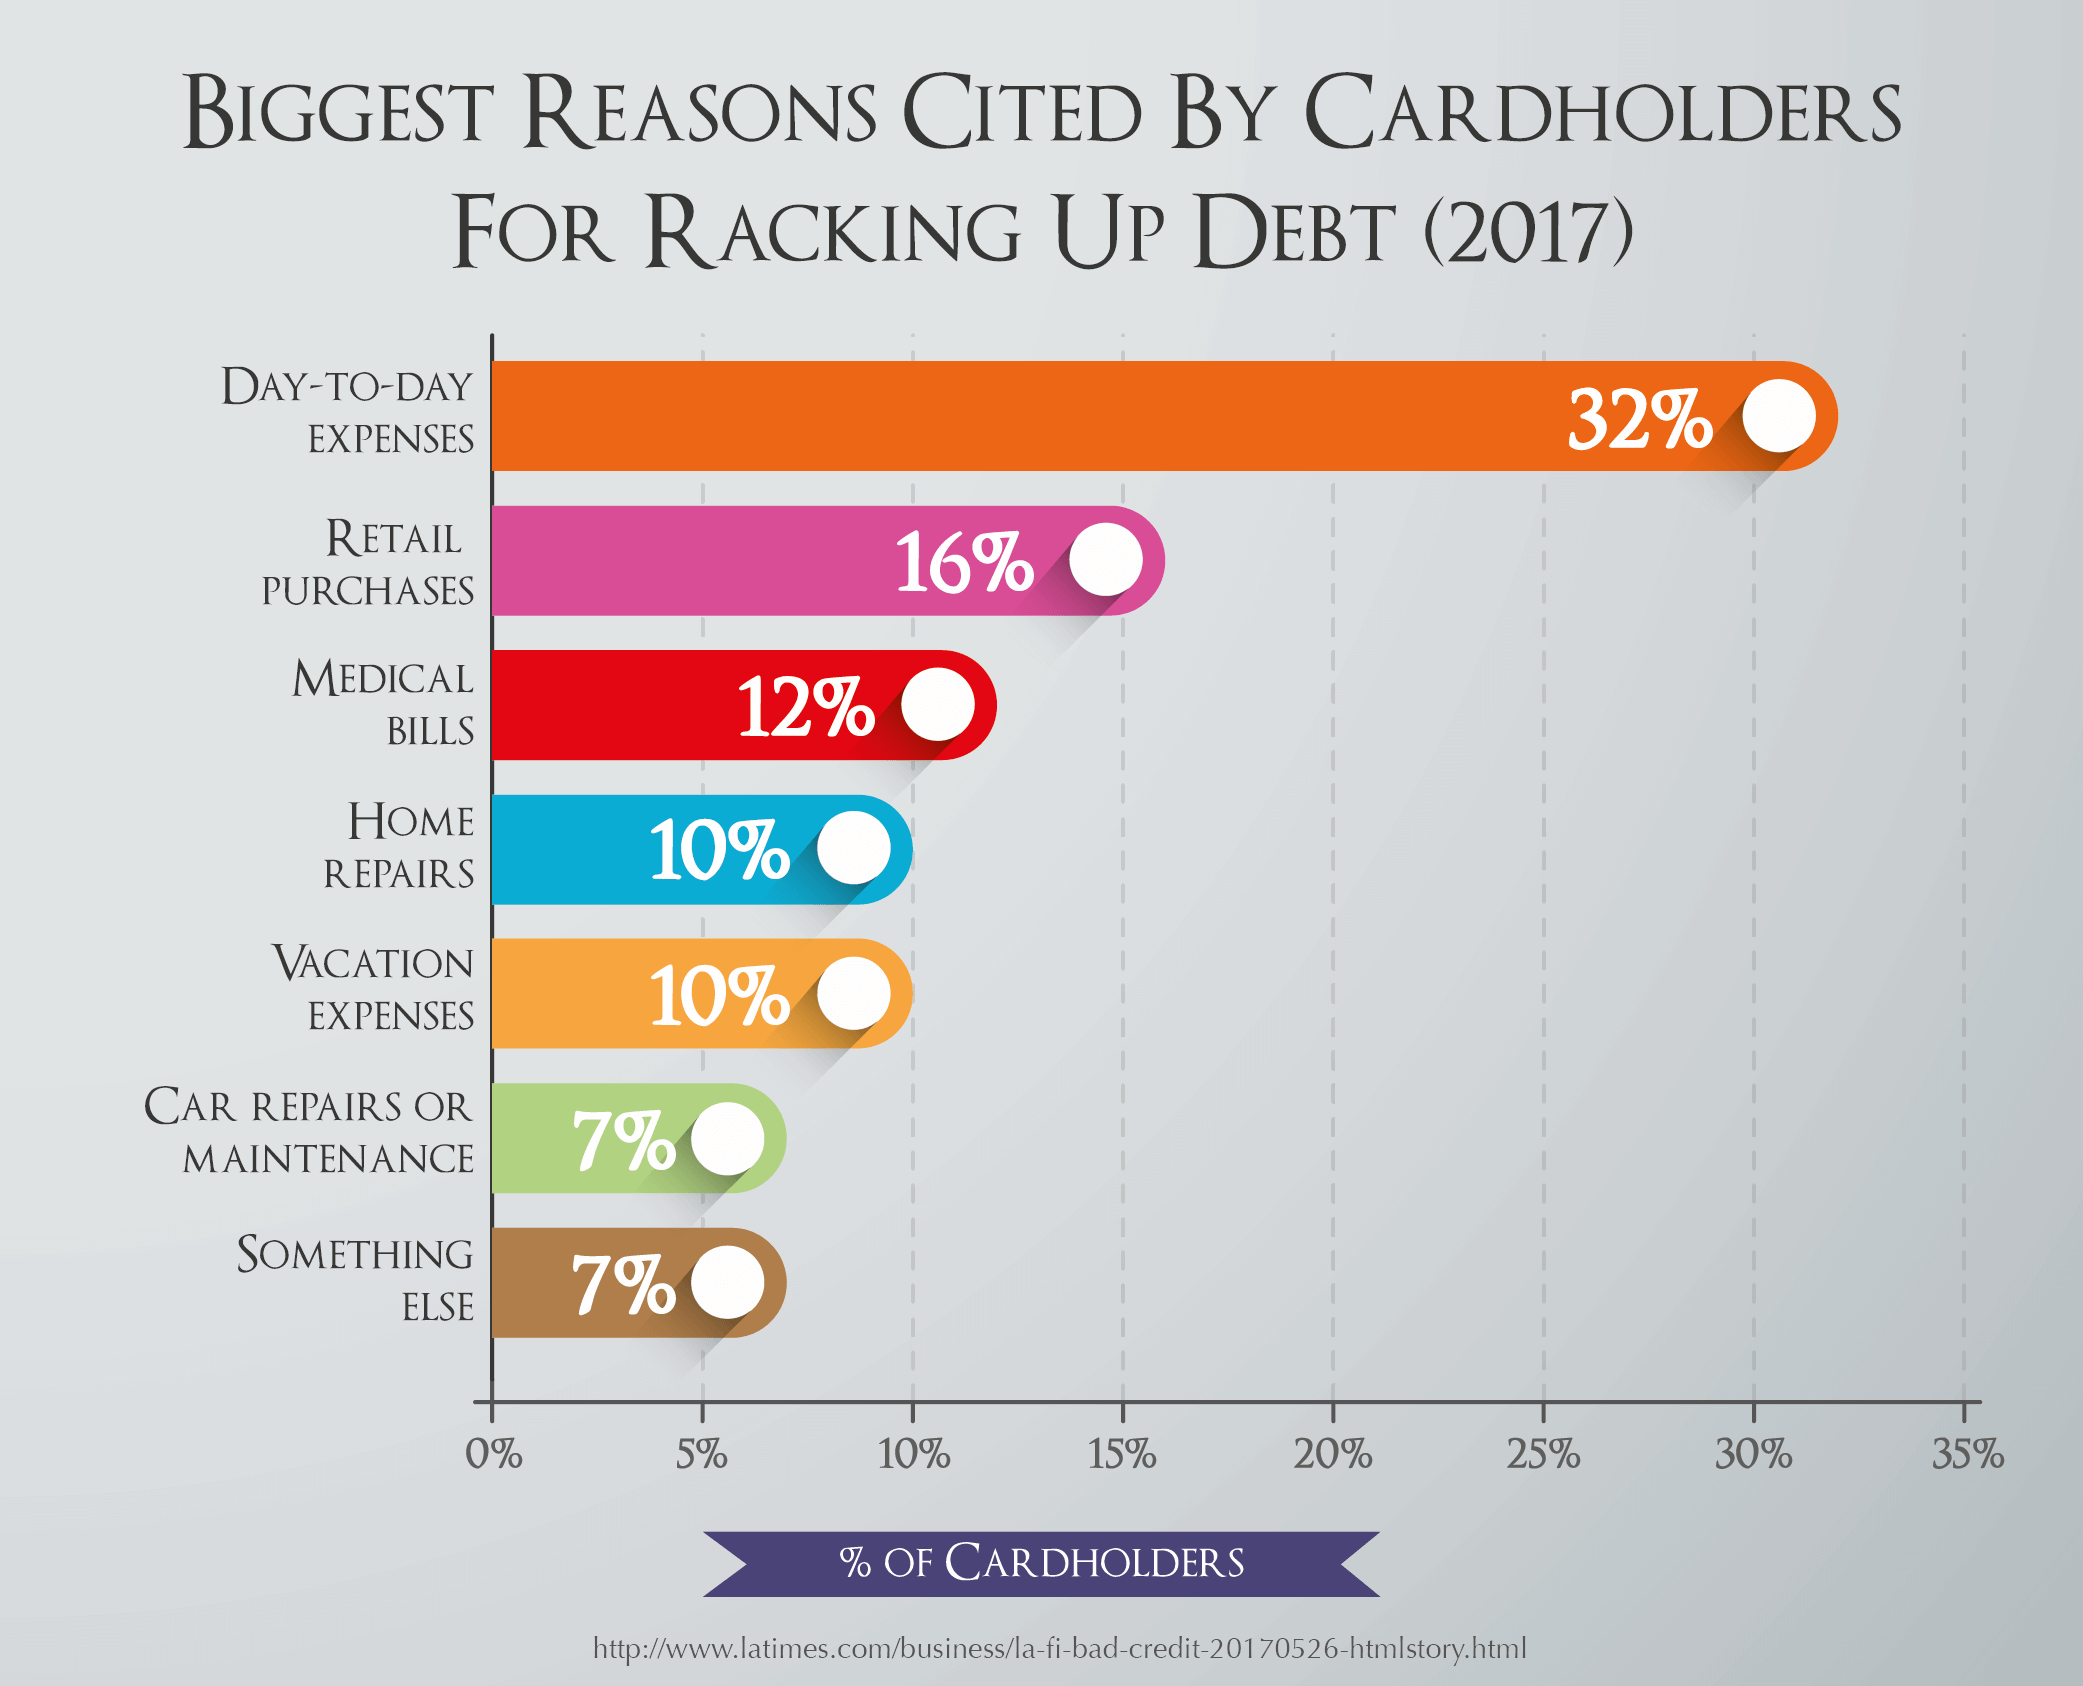 Biggest Reasons Cited By Cardholders For Racking Up Debt (2017)